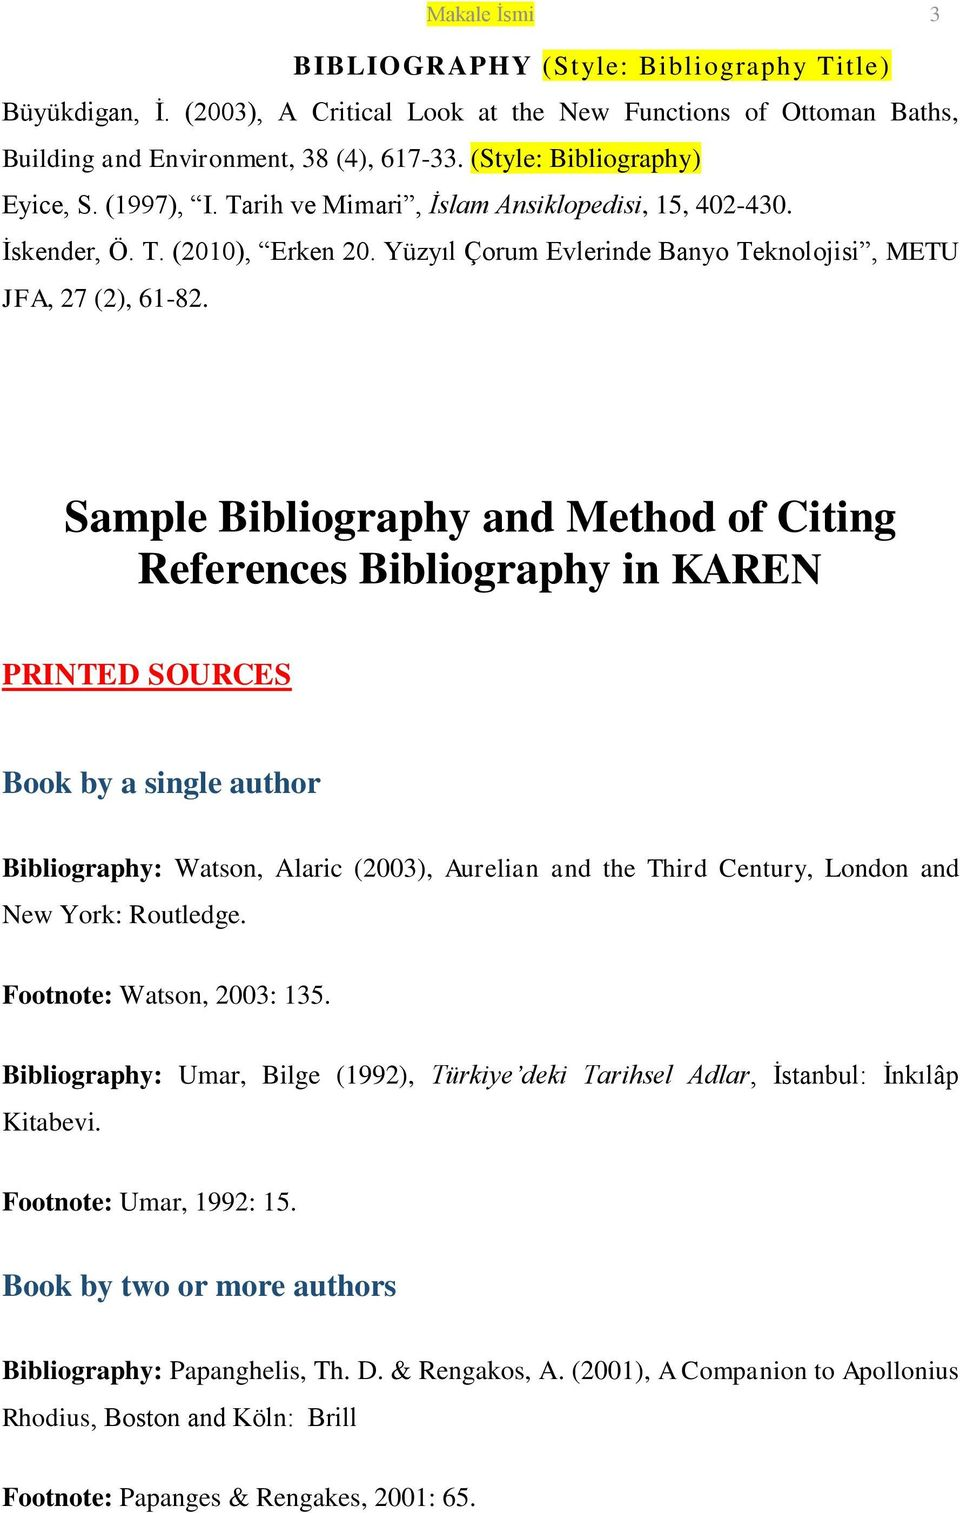 Sample Bibliography and Method of Citing References Bibliography in KAREN PRINTED SOURCES Book by a single author Bibliography: Watson, Alaric (2003), Aurelian and the Third Century, London and New